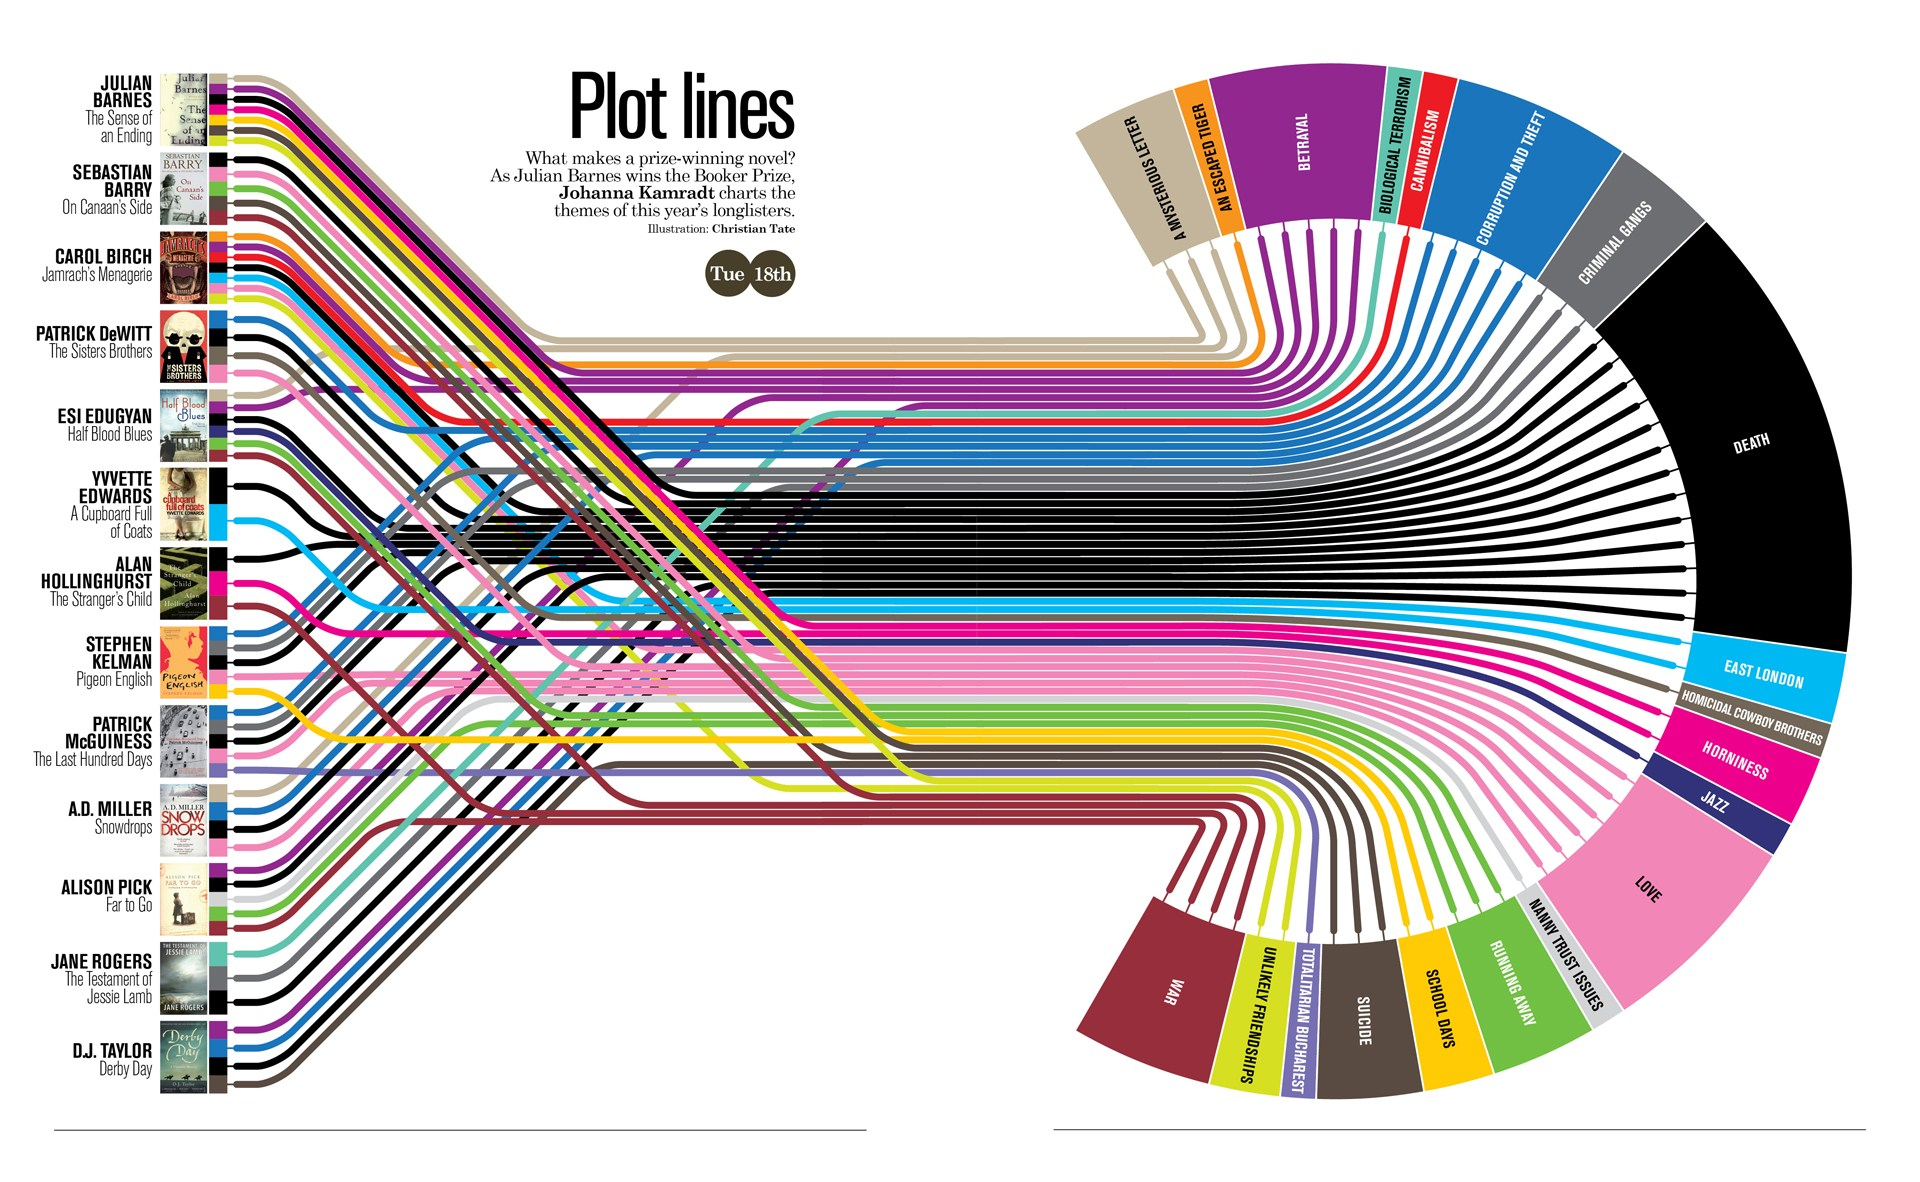 Plot lines - the recipe for writing a bestselleri